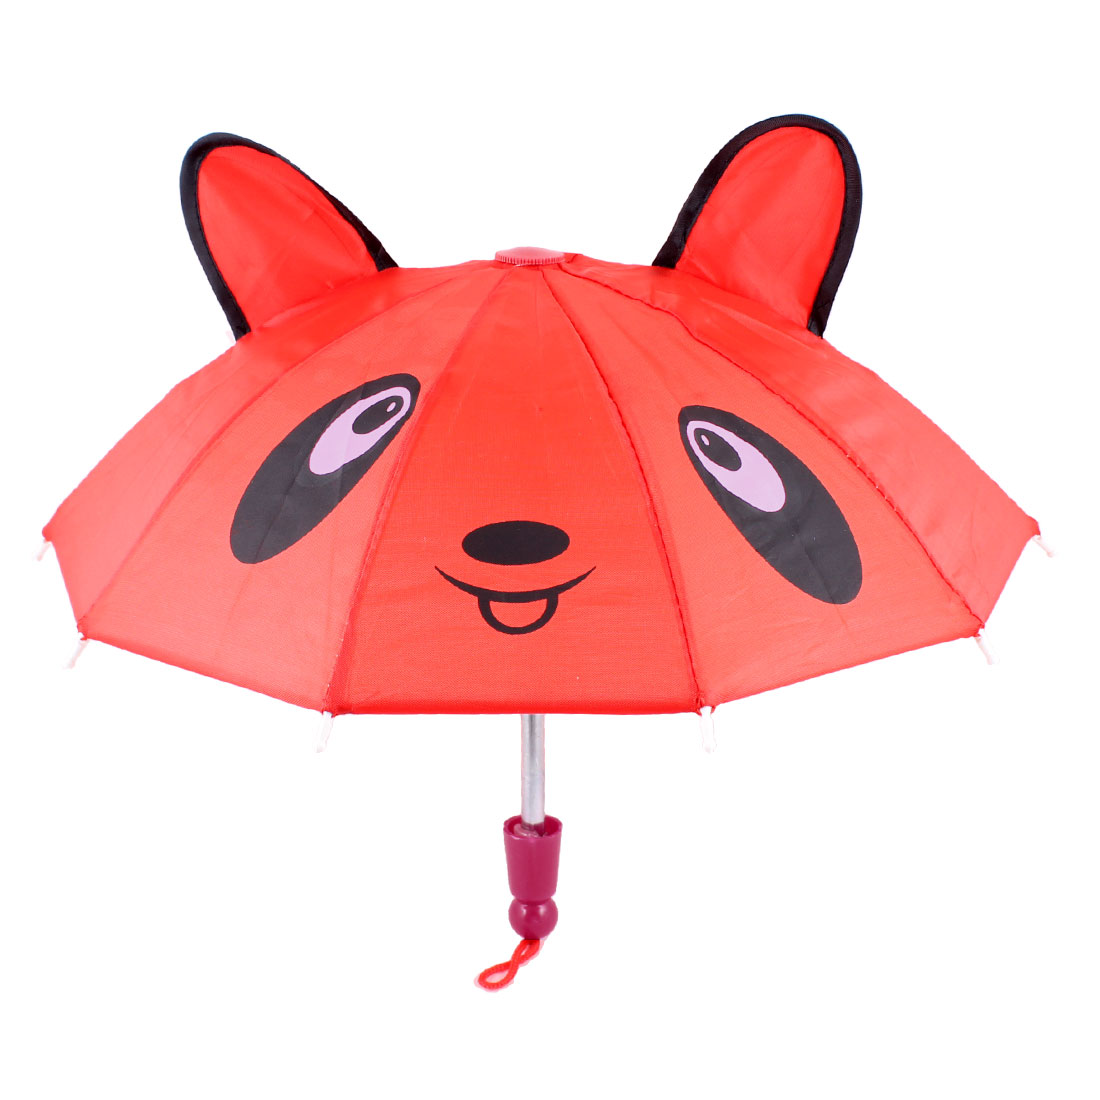 Gift Cartoon Bear Head Pattern Foldable Umbrella Toy Red